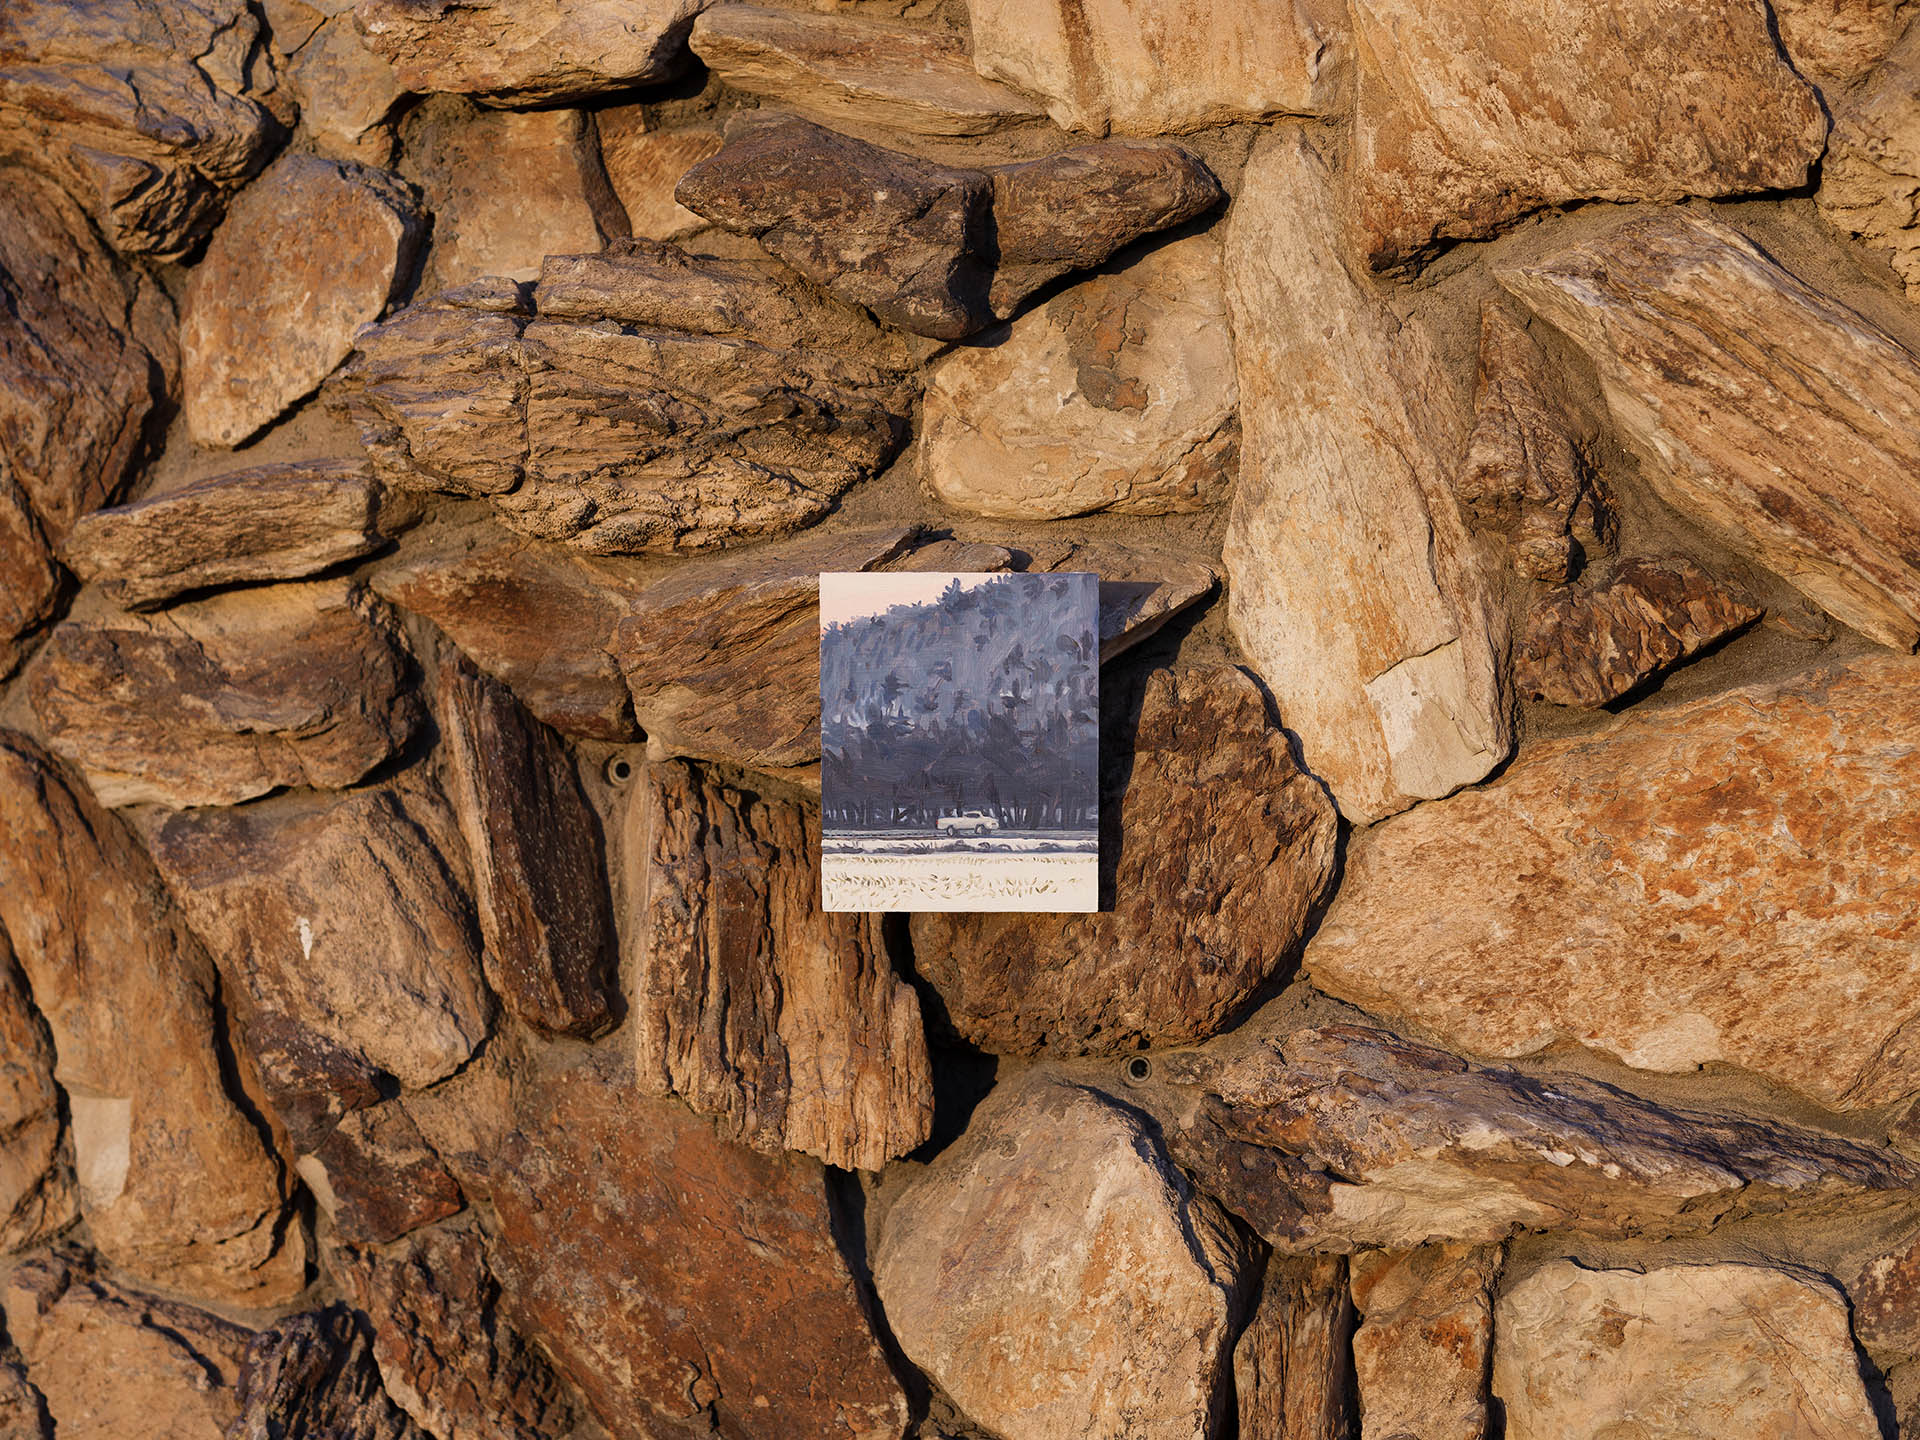 An installation view of Claudia Keep's painting, Driving to Richmond, captured by photographer Tag Christof in the Western United States in 2021 for MARCH. The image shows a painting laying on a bed of stones.